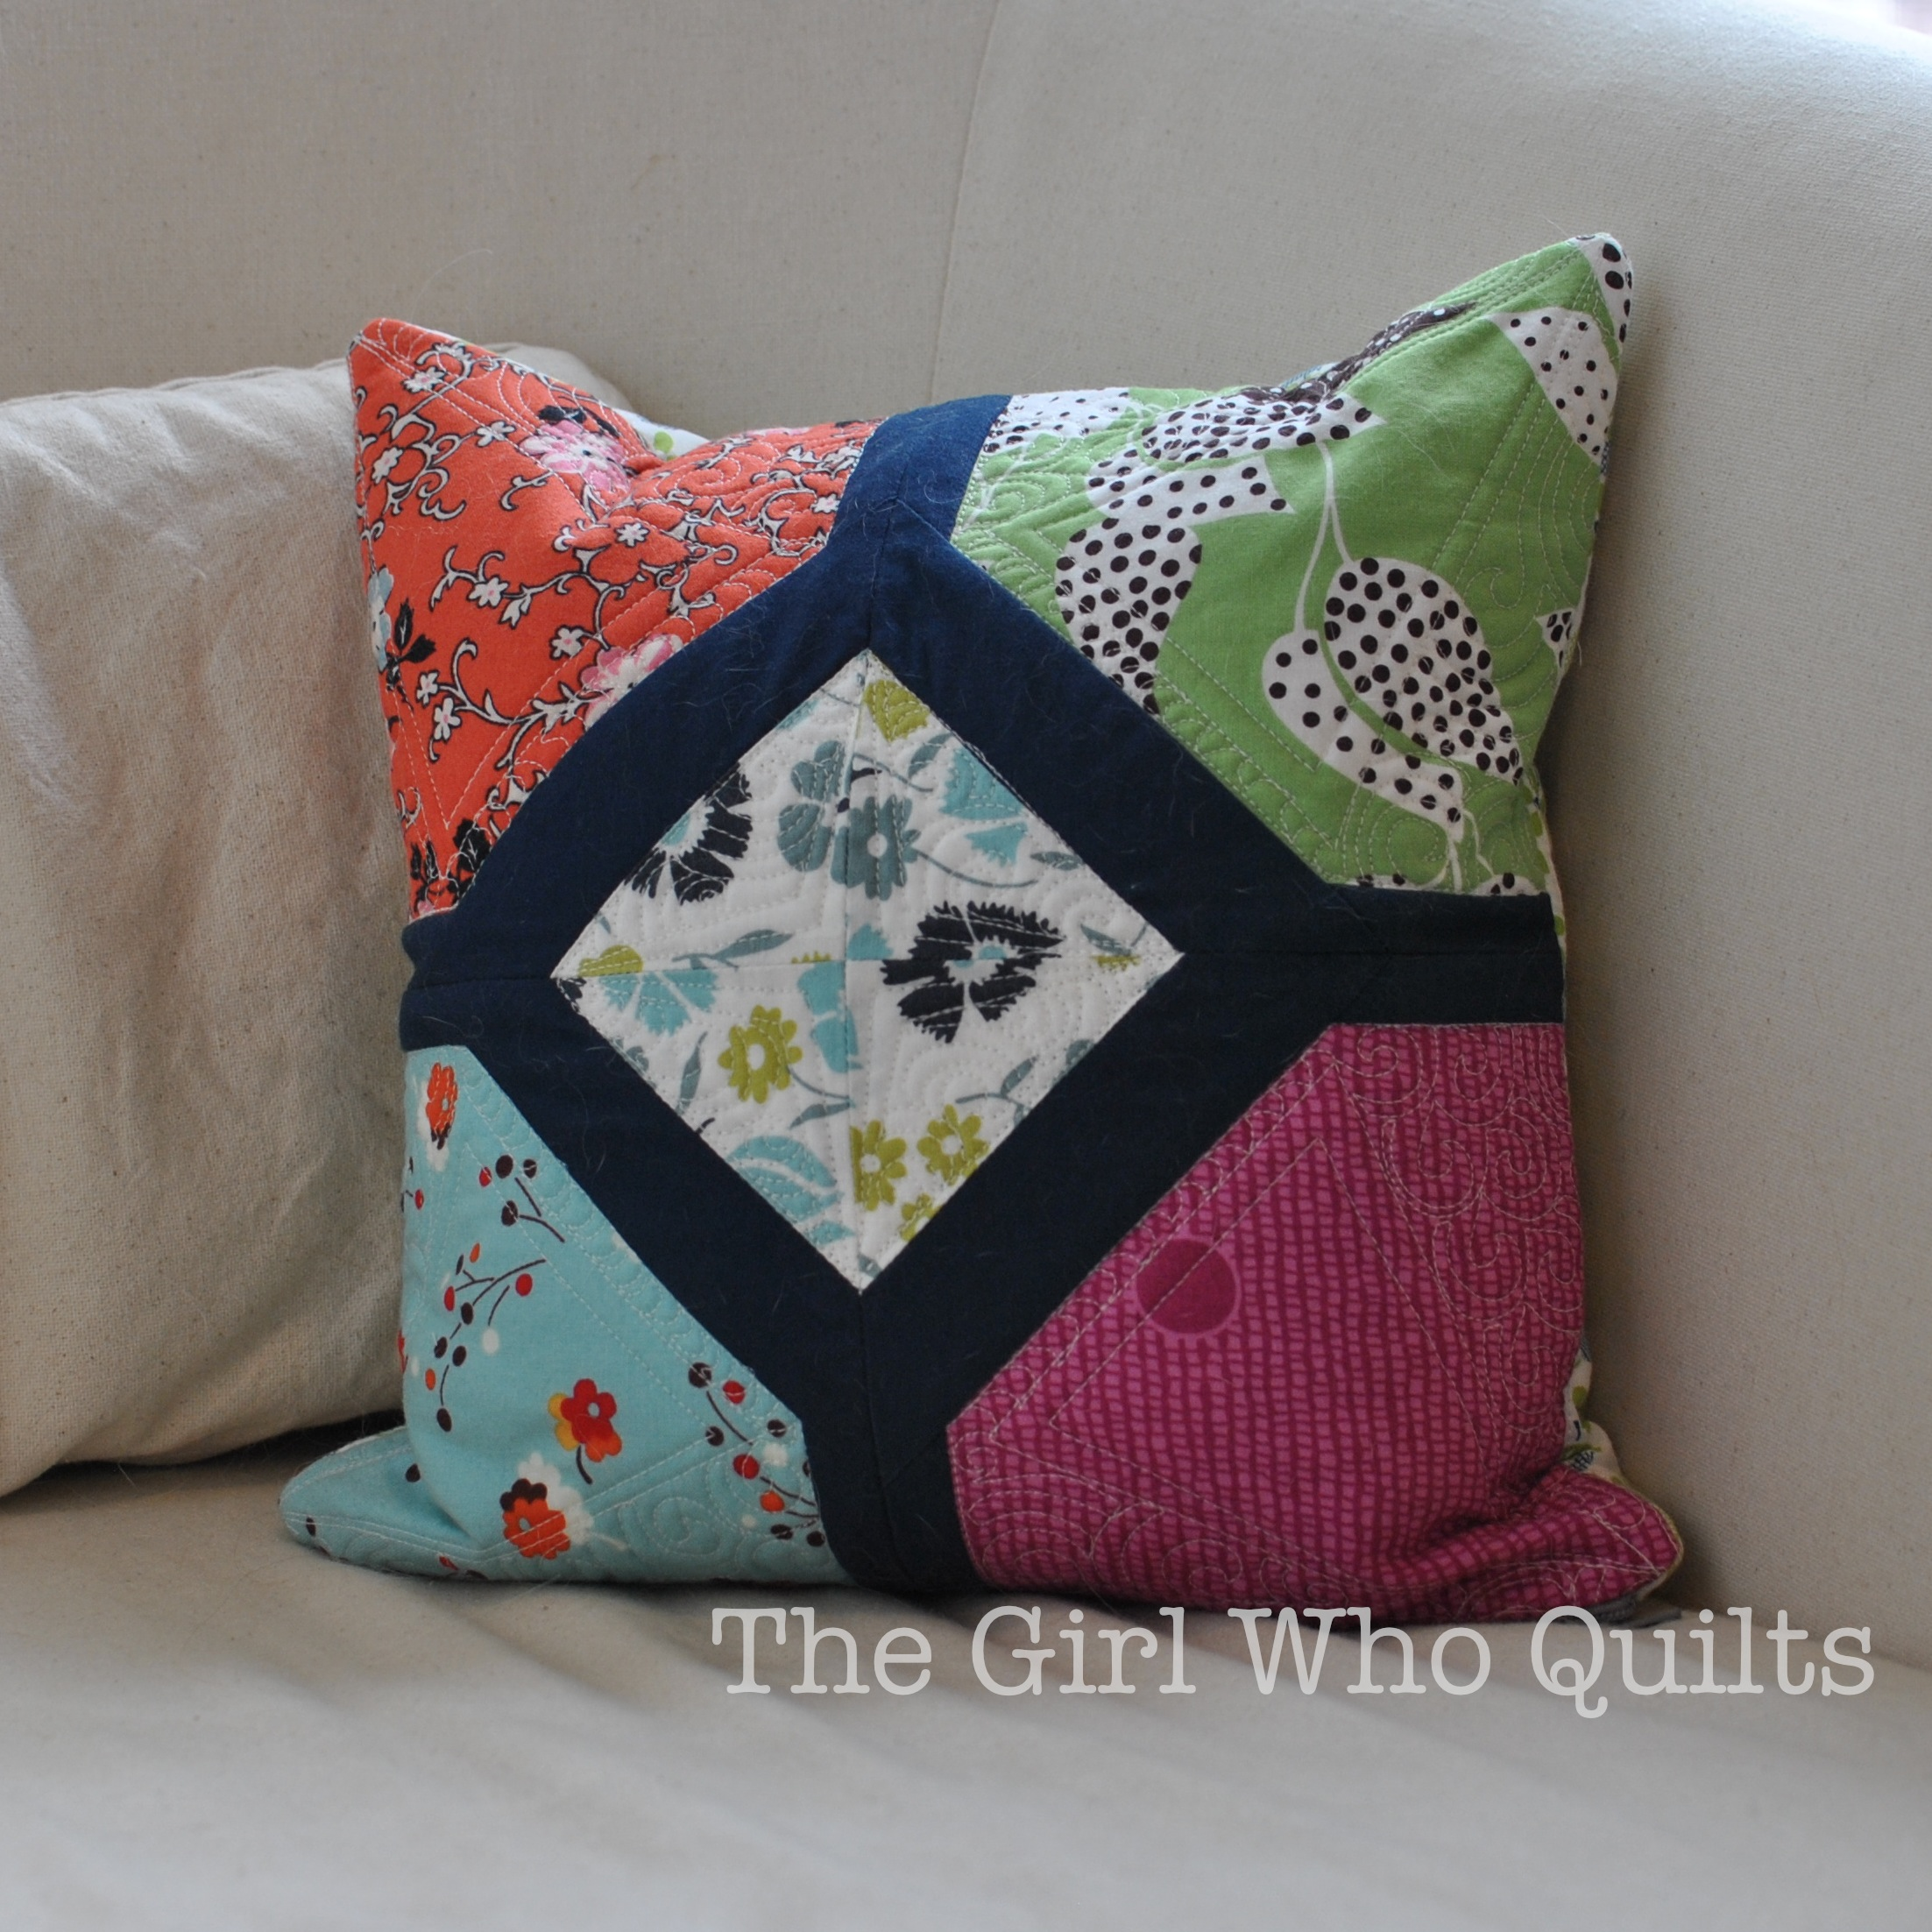 Free pillow/quilt pattern!